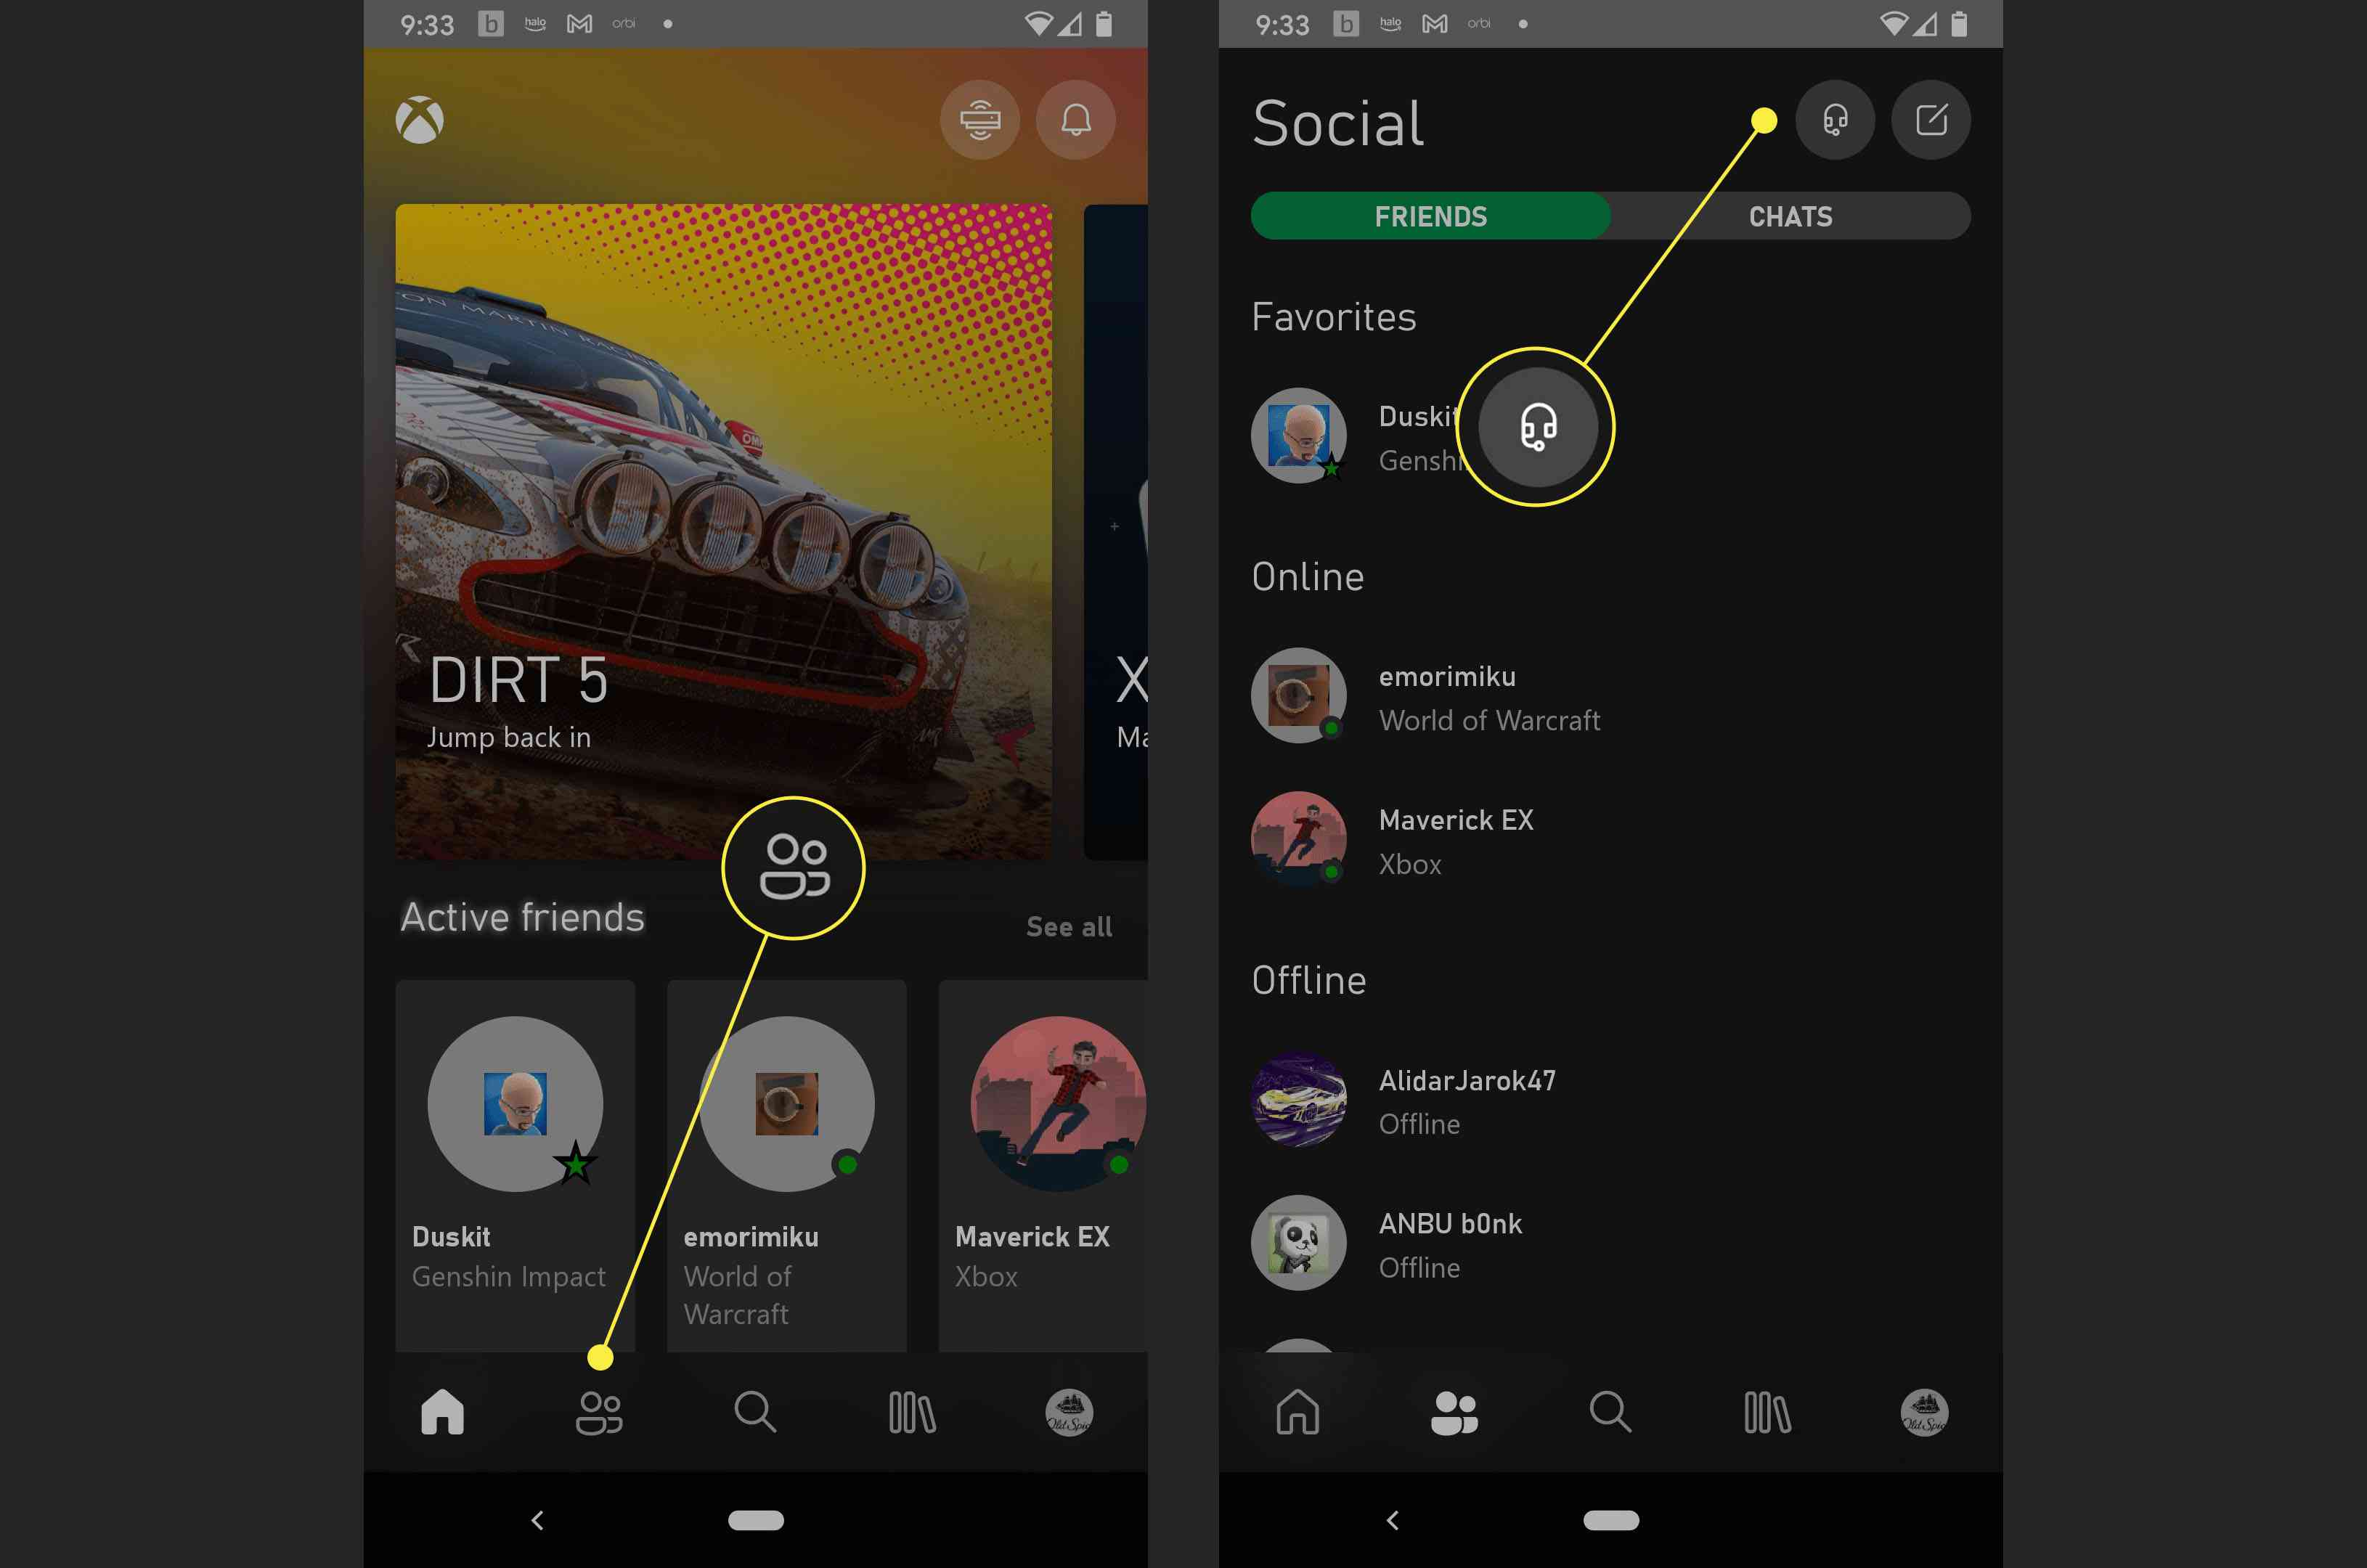 The social options in the Xbox app on Android.